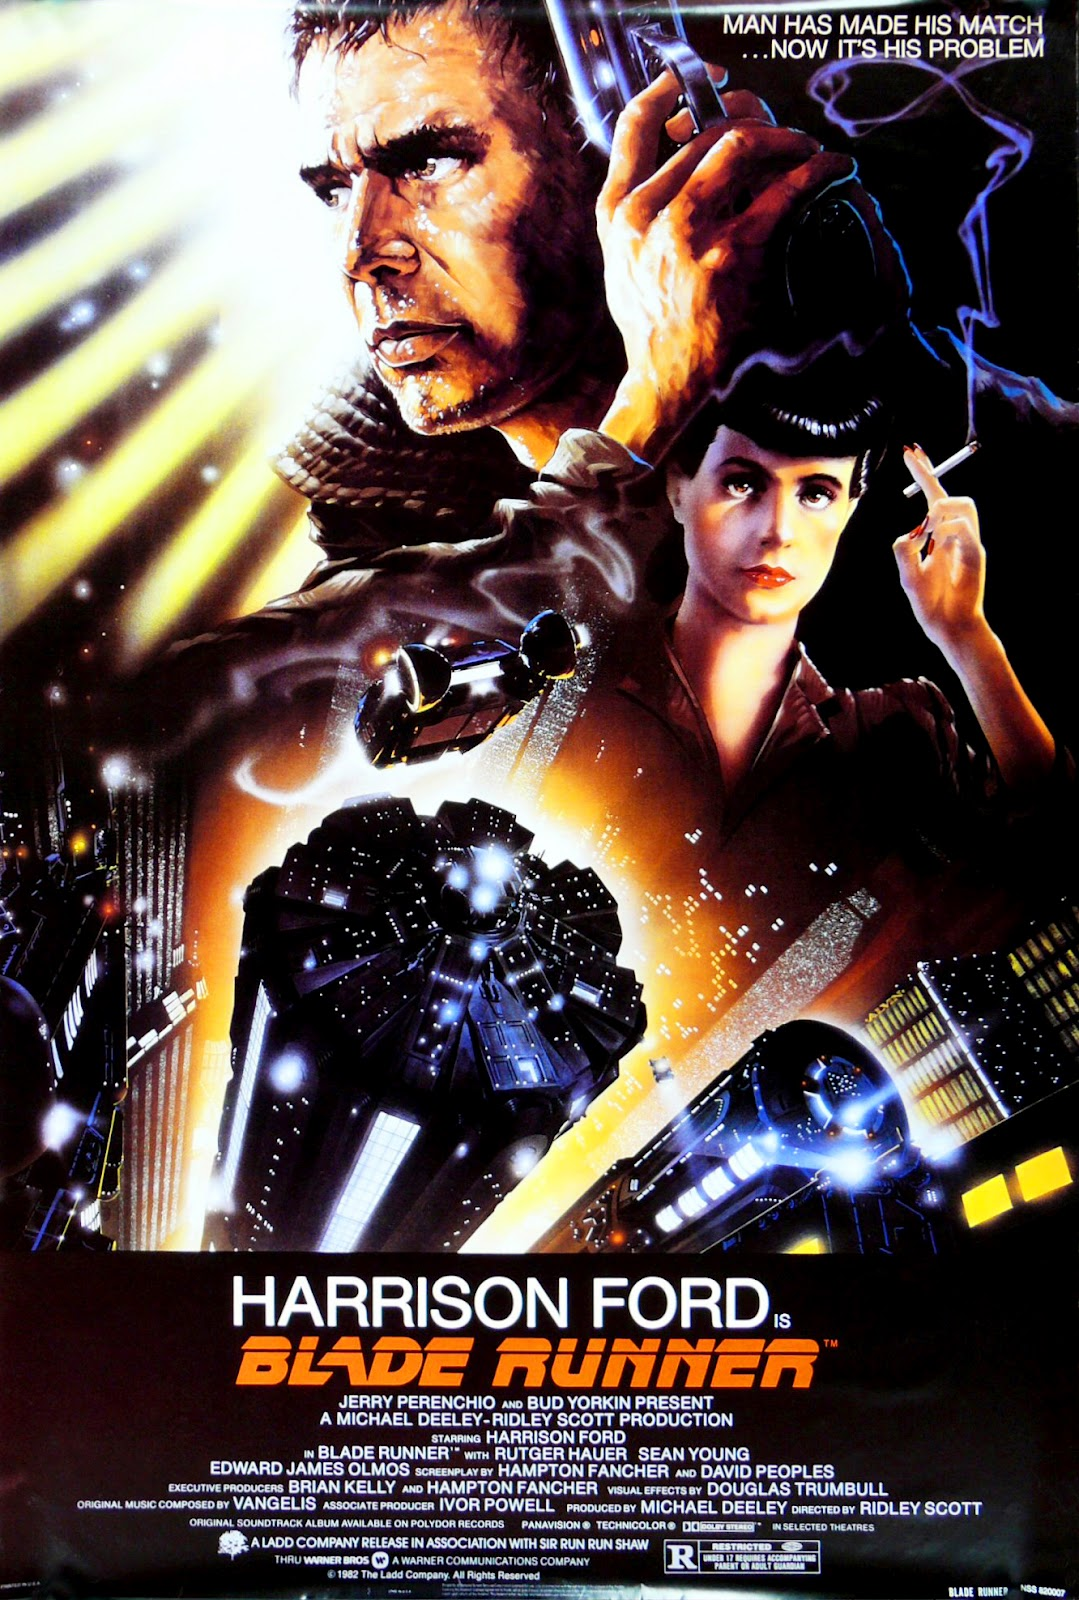 200088-Blade-Runner-Movie-from-the-1982-film-classic-Wall-Print-Poster-Affiche